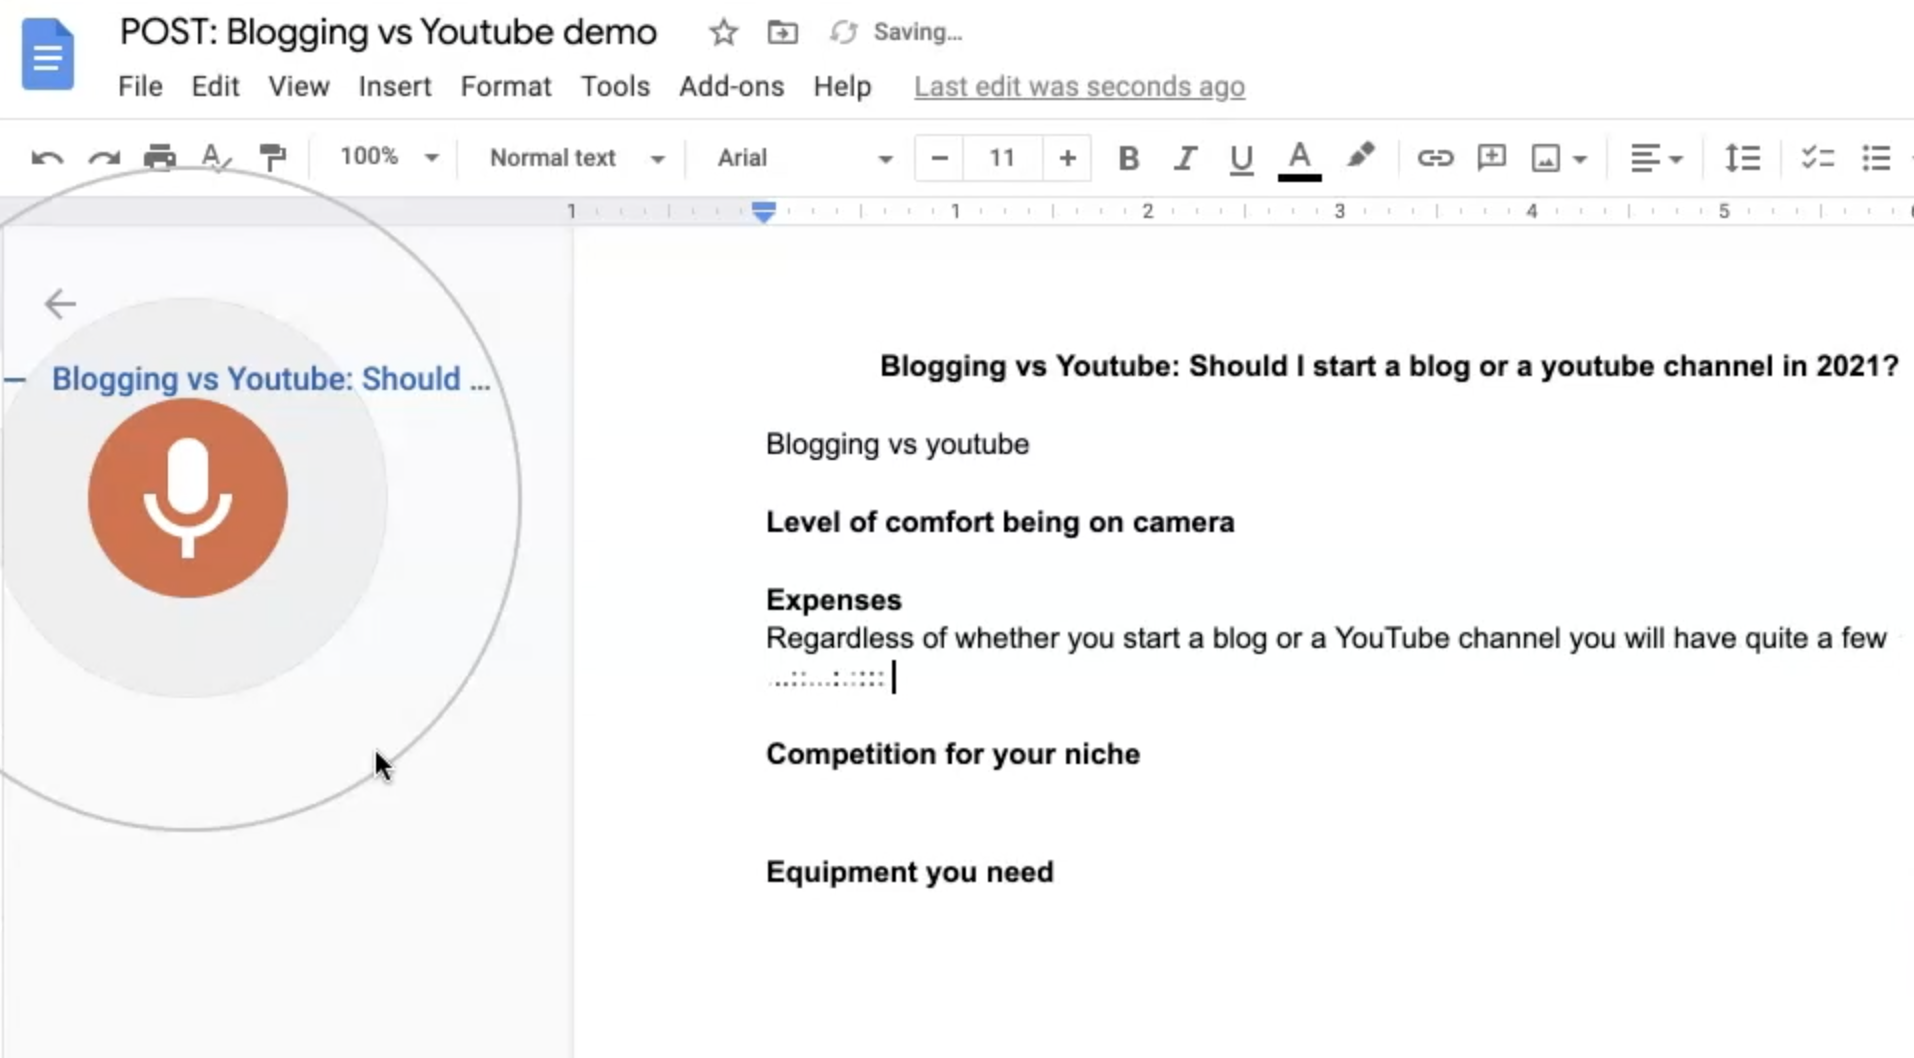 How to use speech to text in Google docs